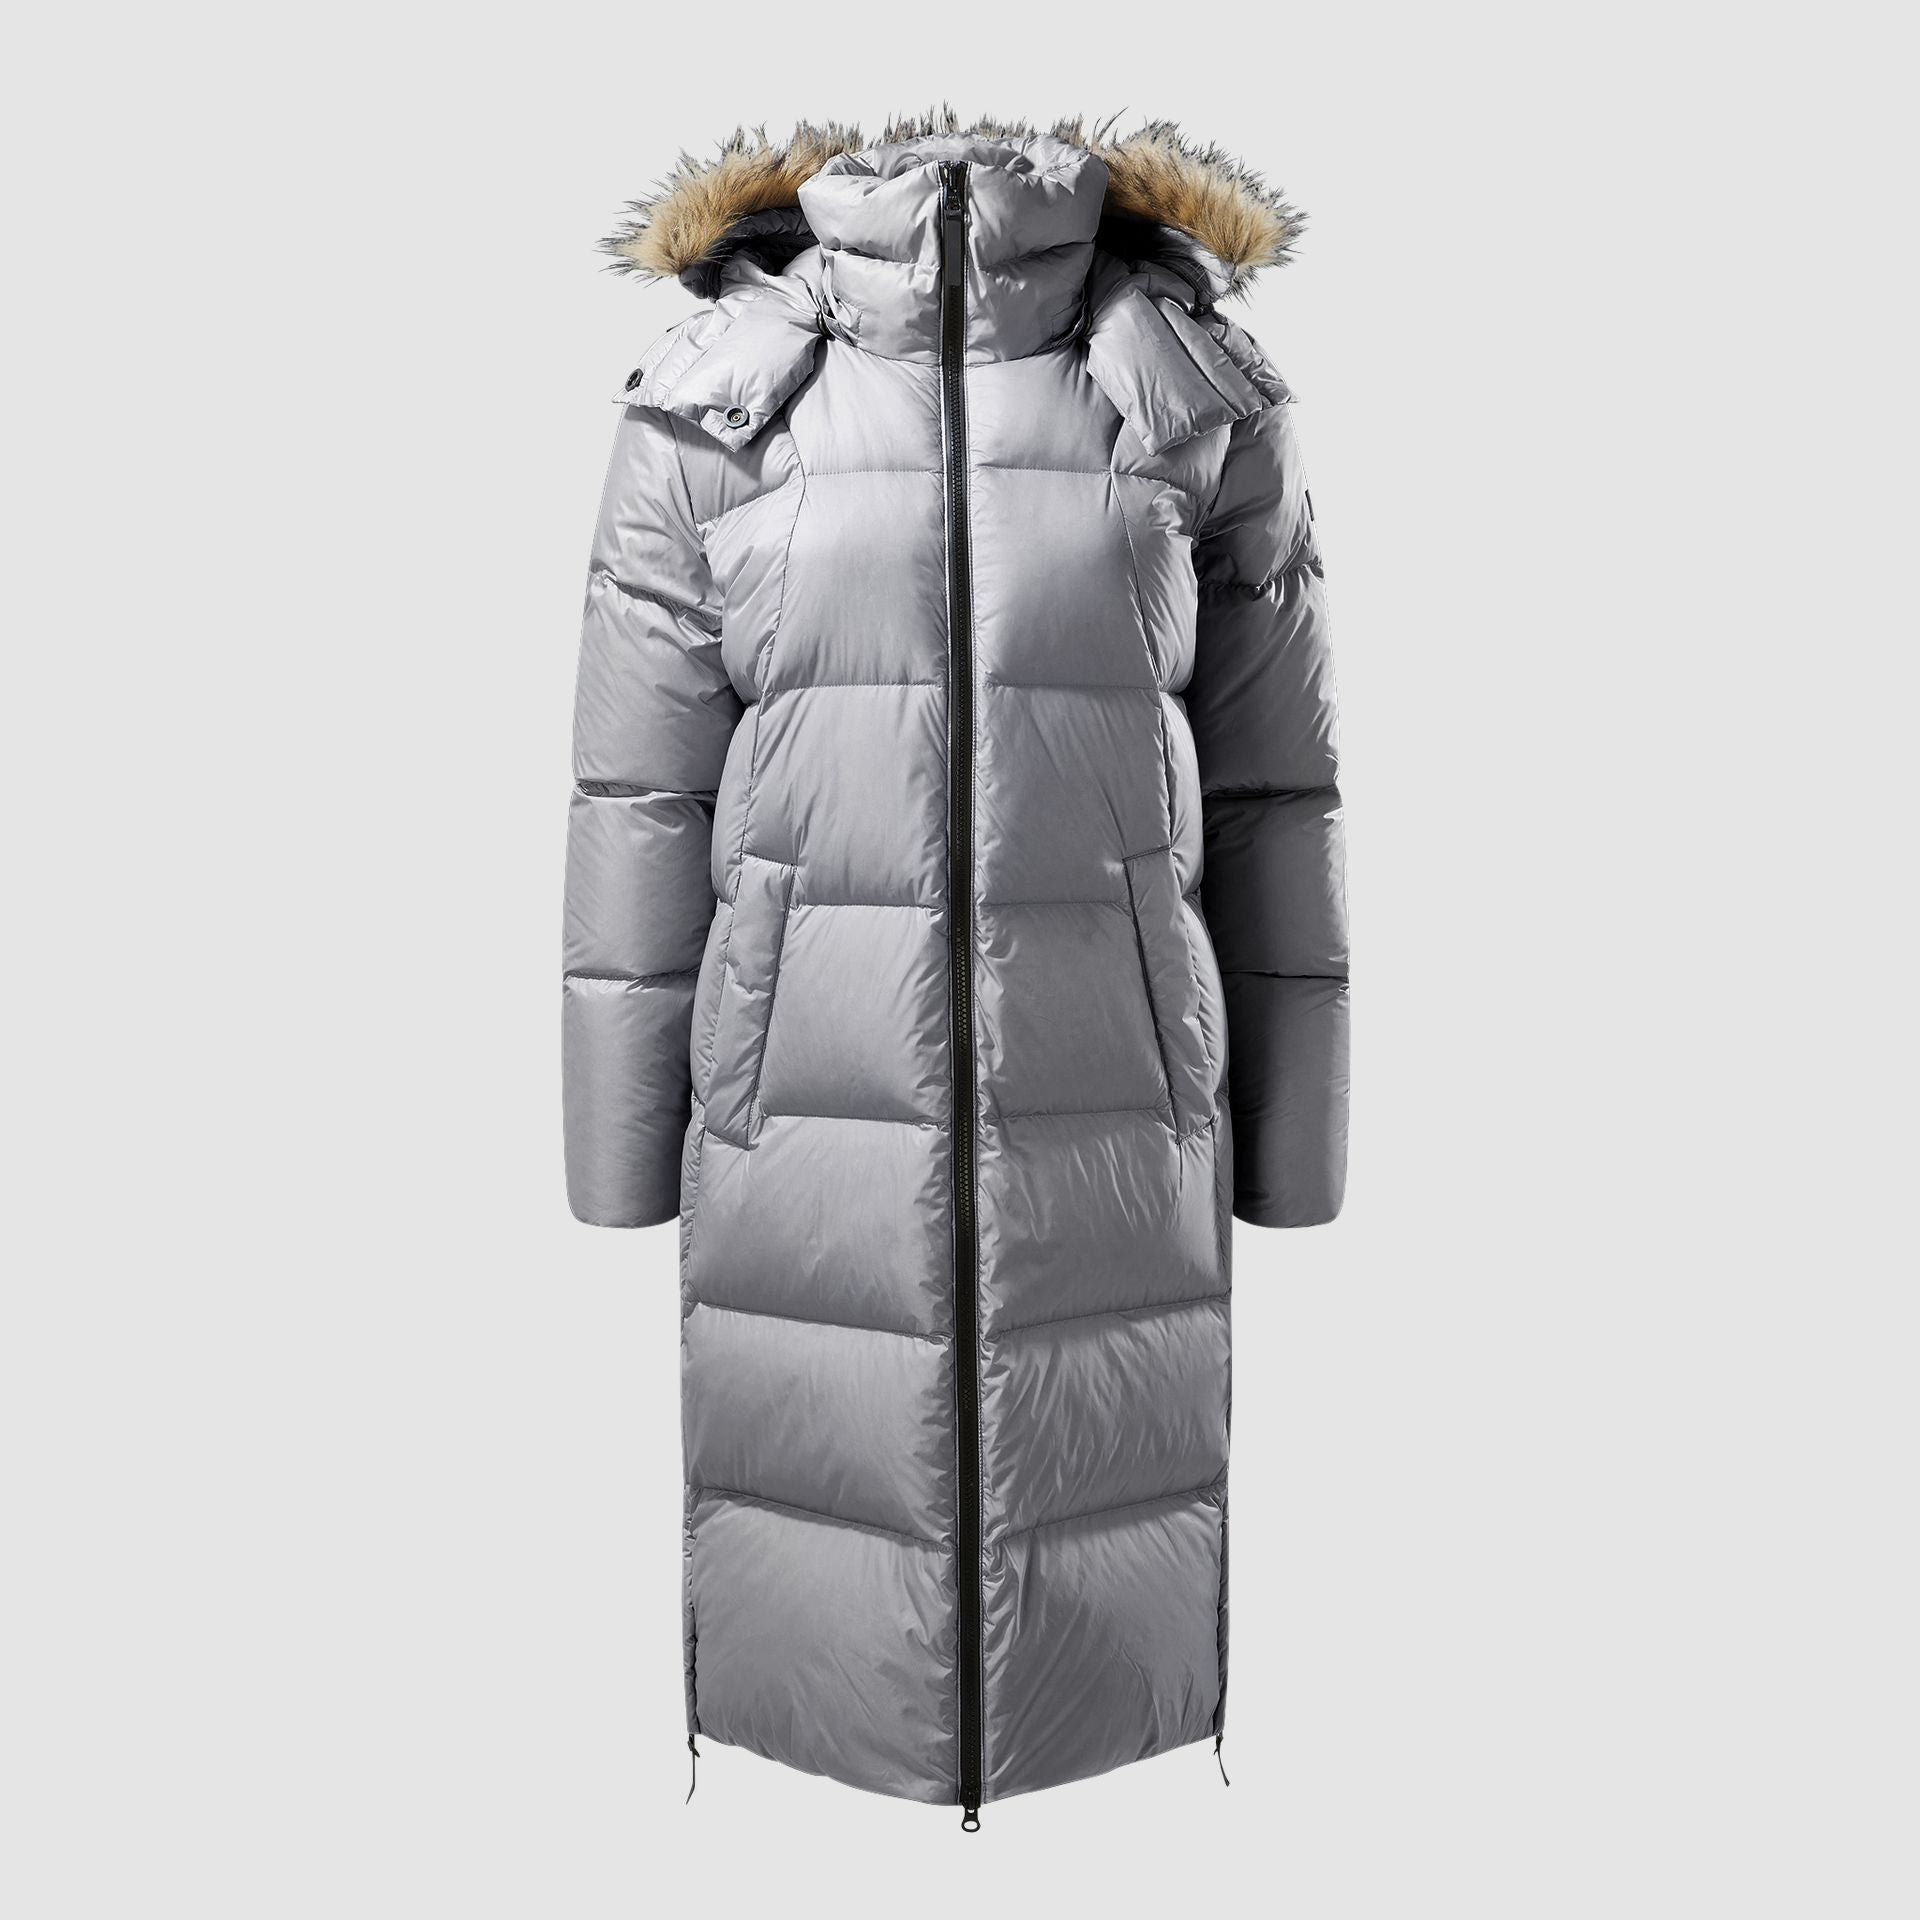 Jack Wolfskin - Techlab Manteau The Great Laks | Gray Slate